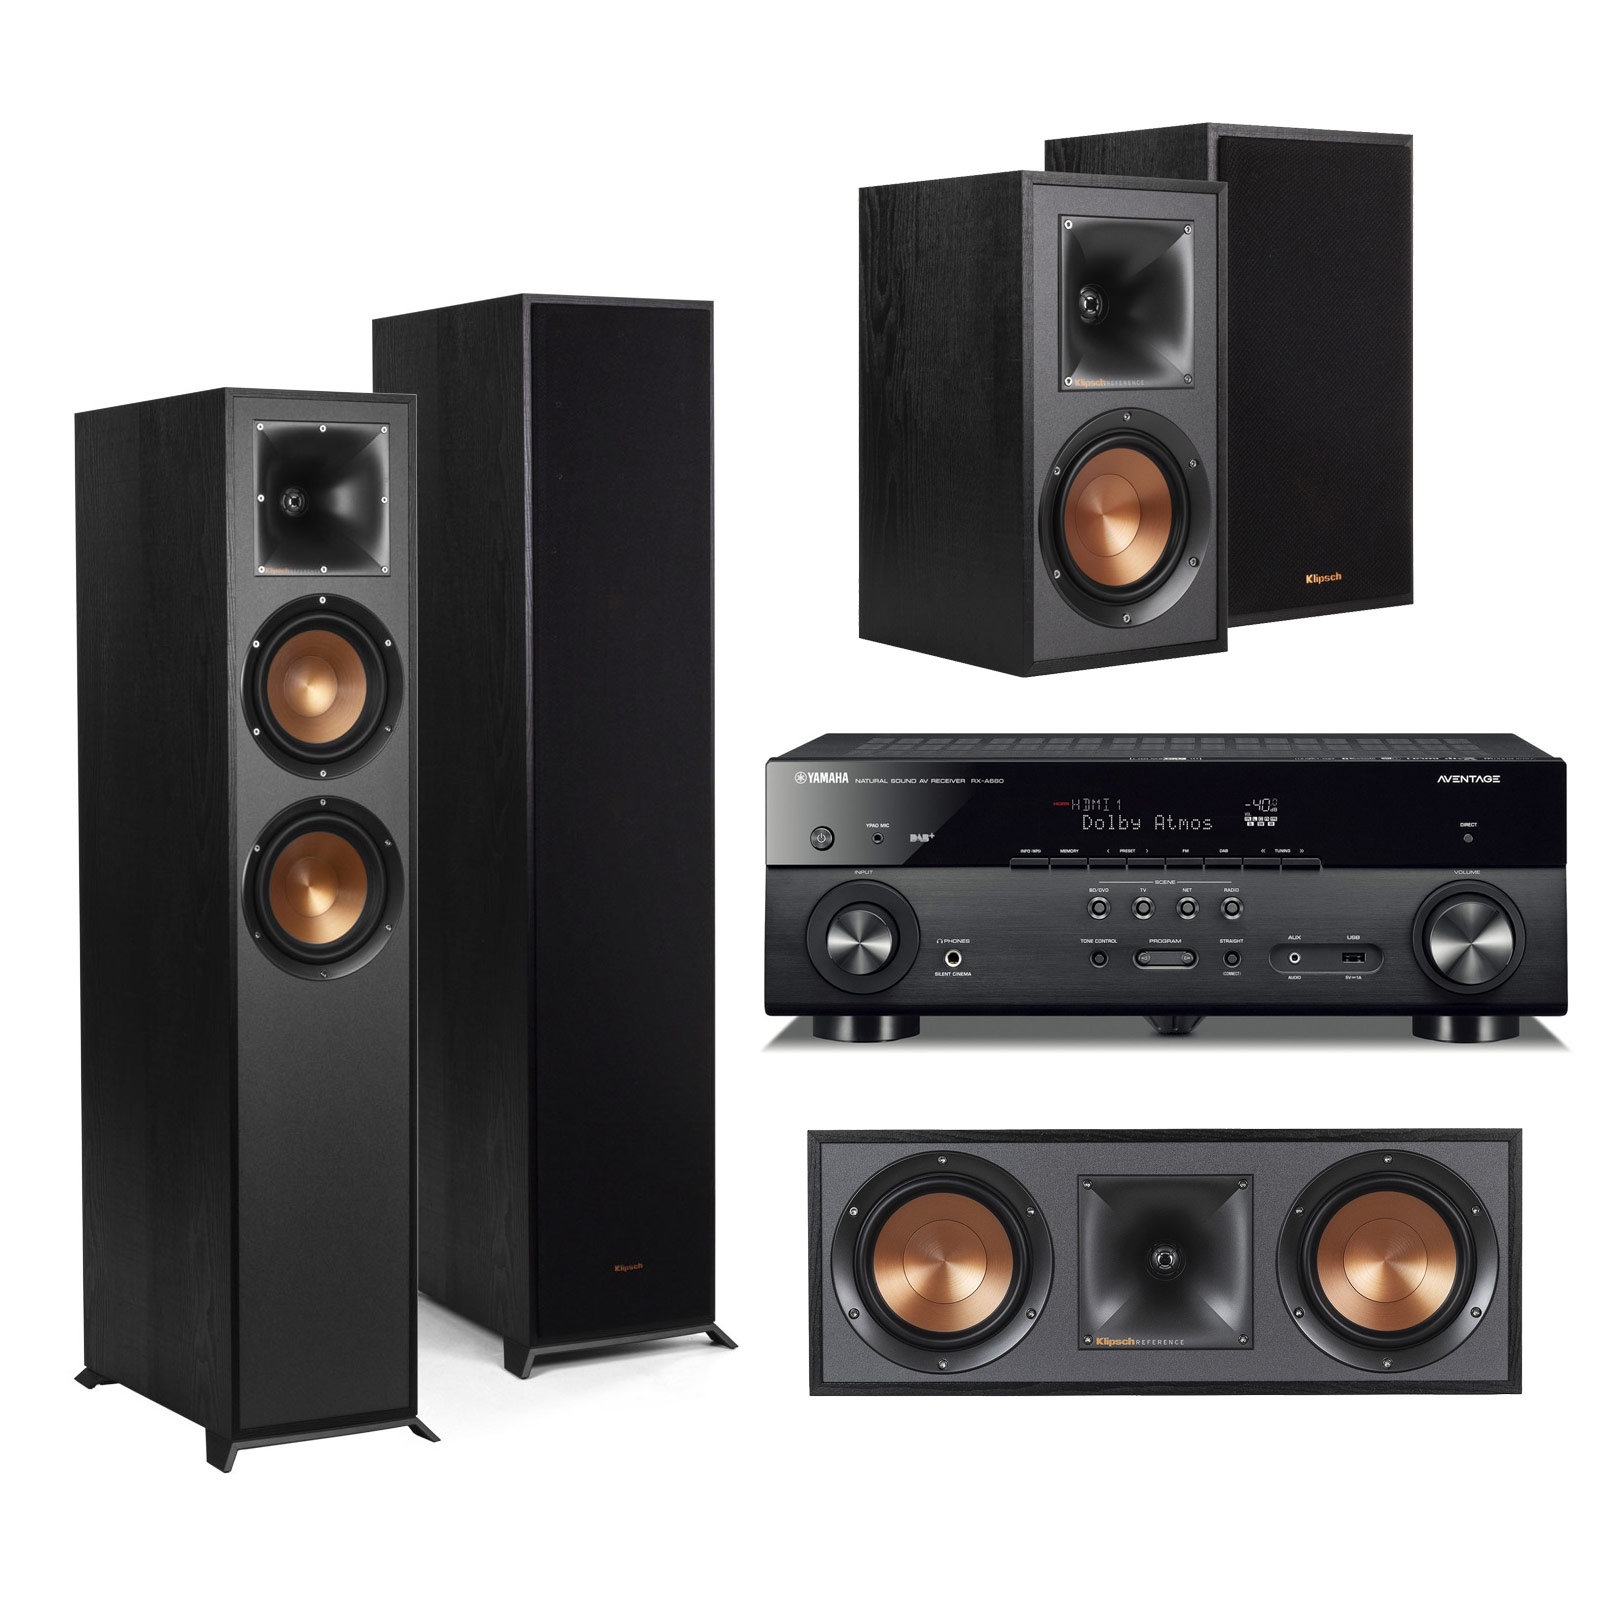 yamaha musiccast rx a680 noir klipsch pack 620 5 0 rx a680 black klipsck pack 620 5 0. Black Bedroom Furniture Sets. Home Design Ideas